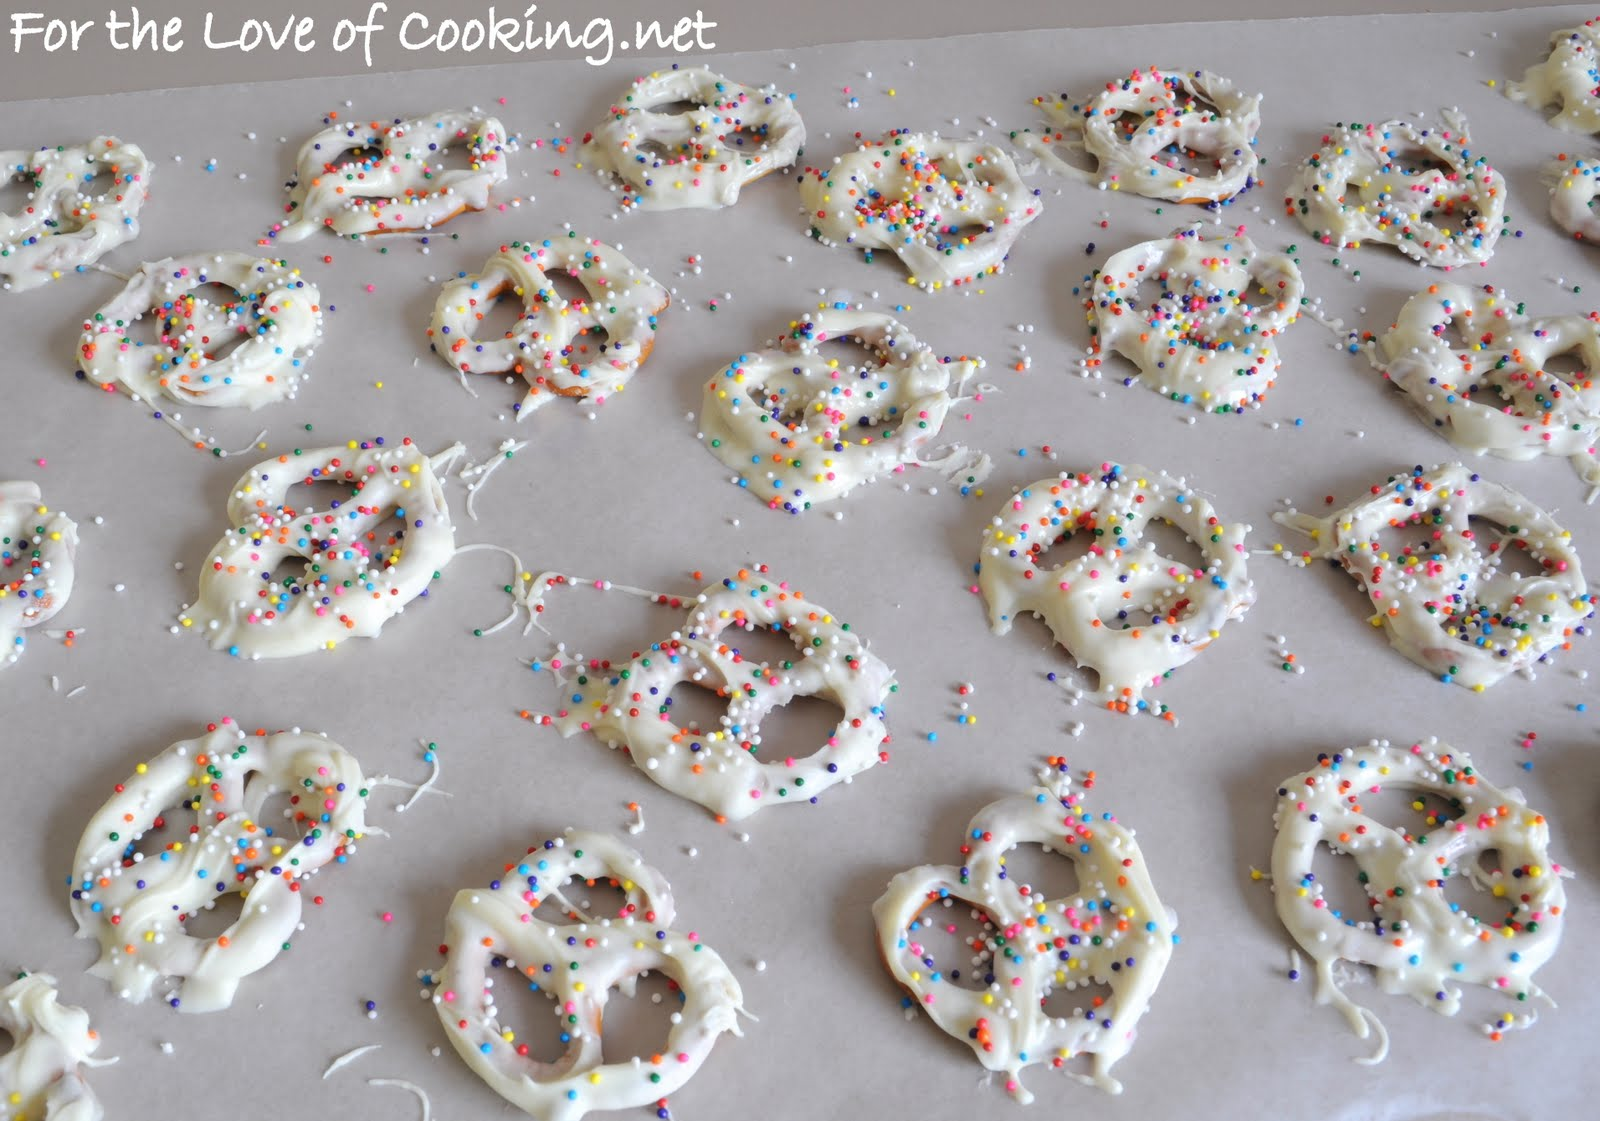 White Chocolate Dipped Pretzels | For the Love of Cooking